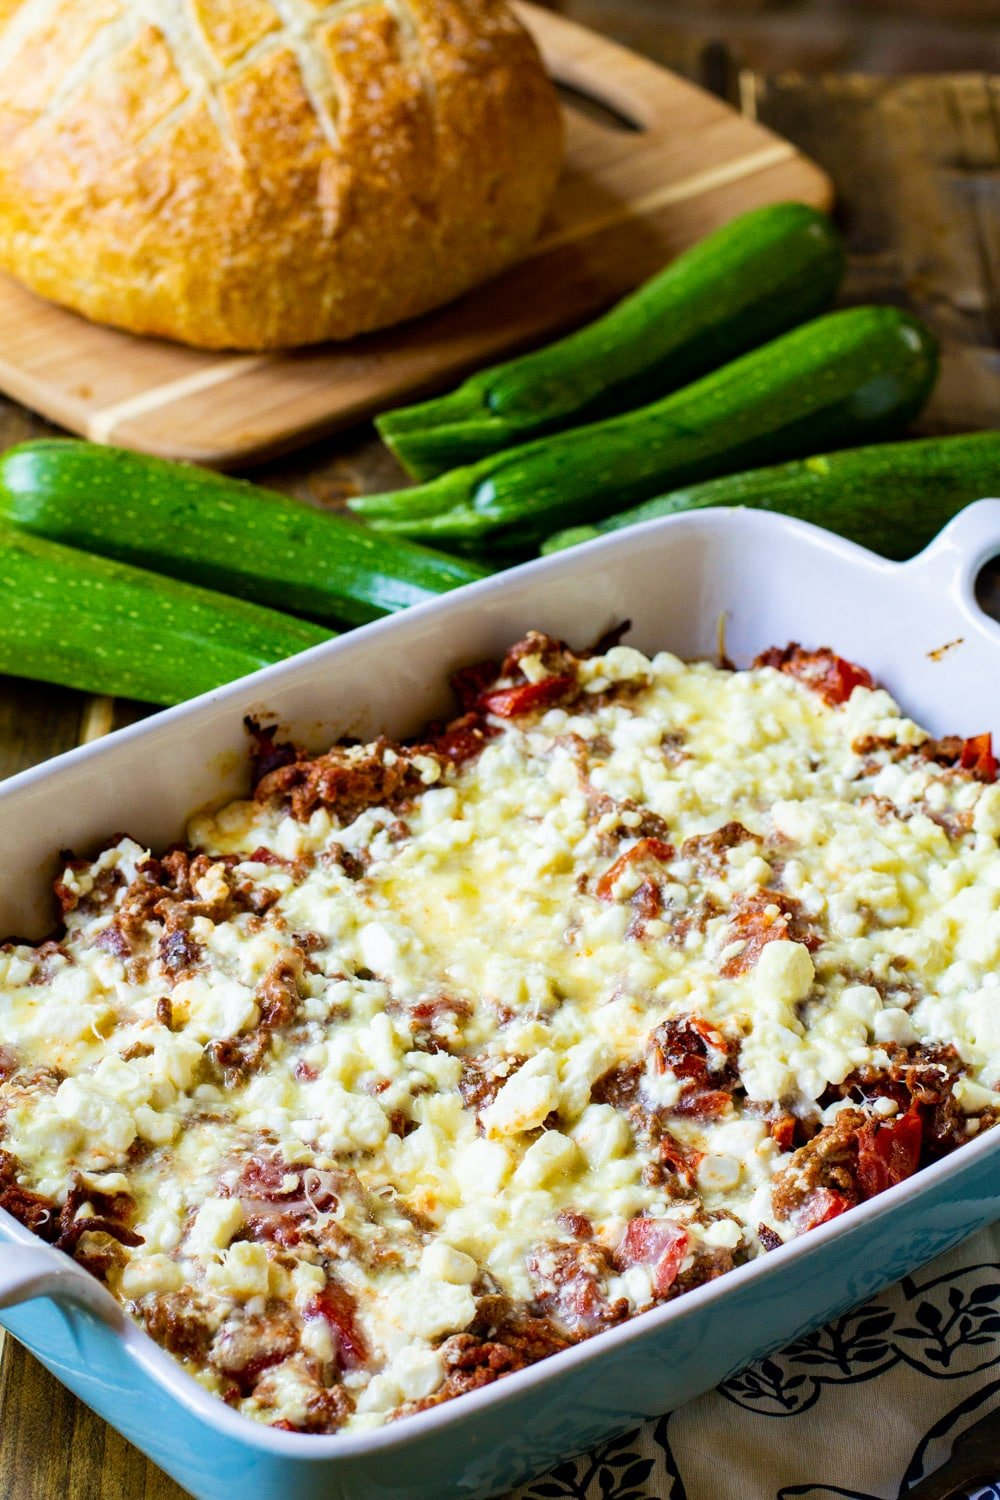 Zucchini Moussaka with a loaf of bread.